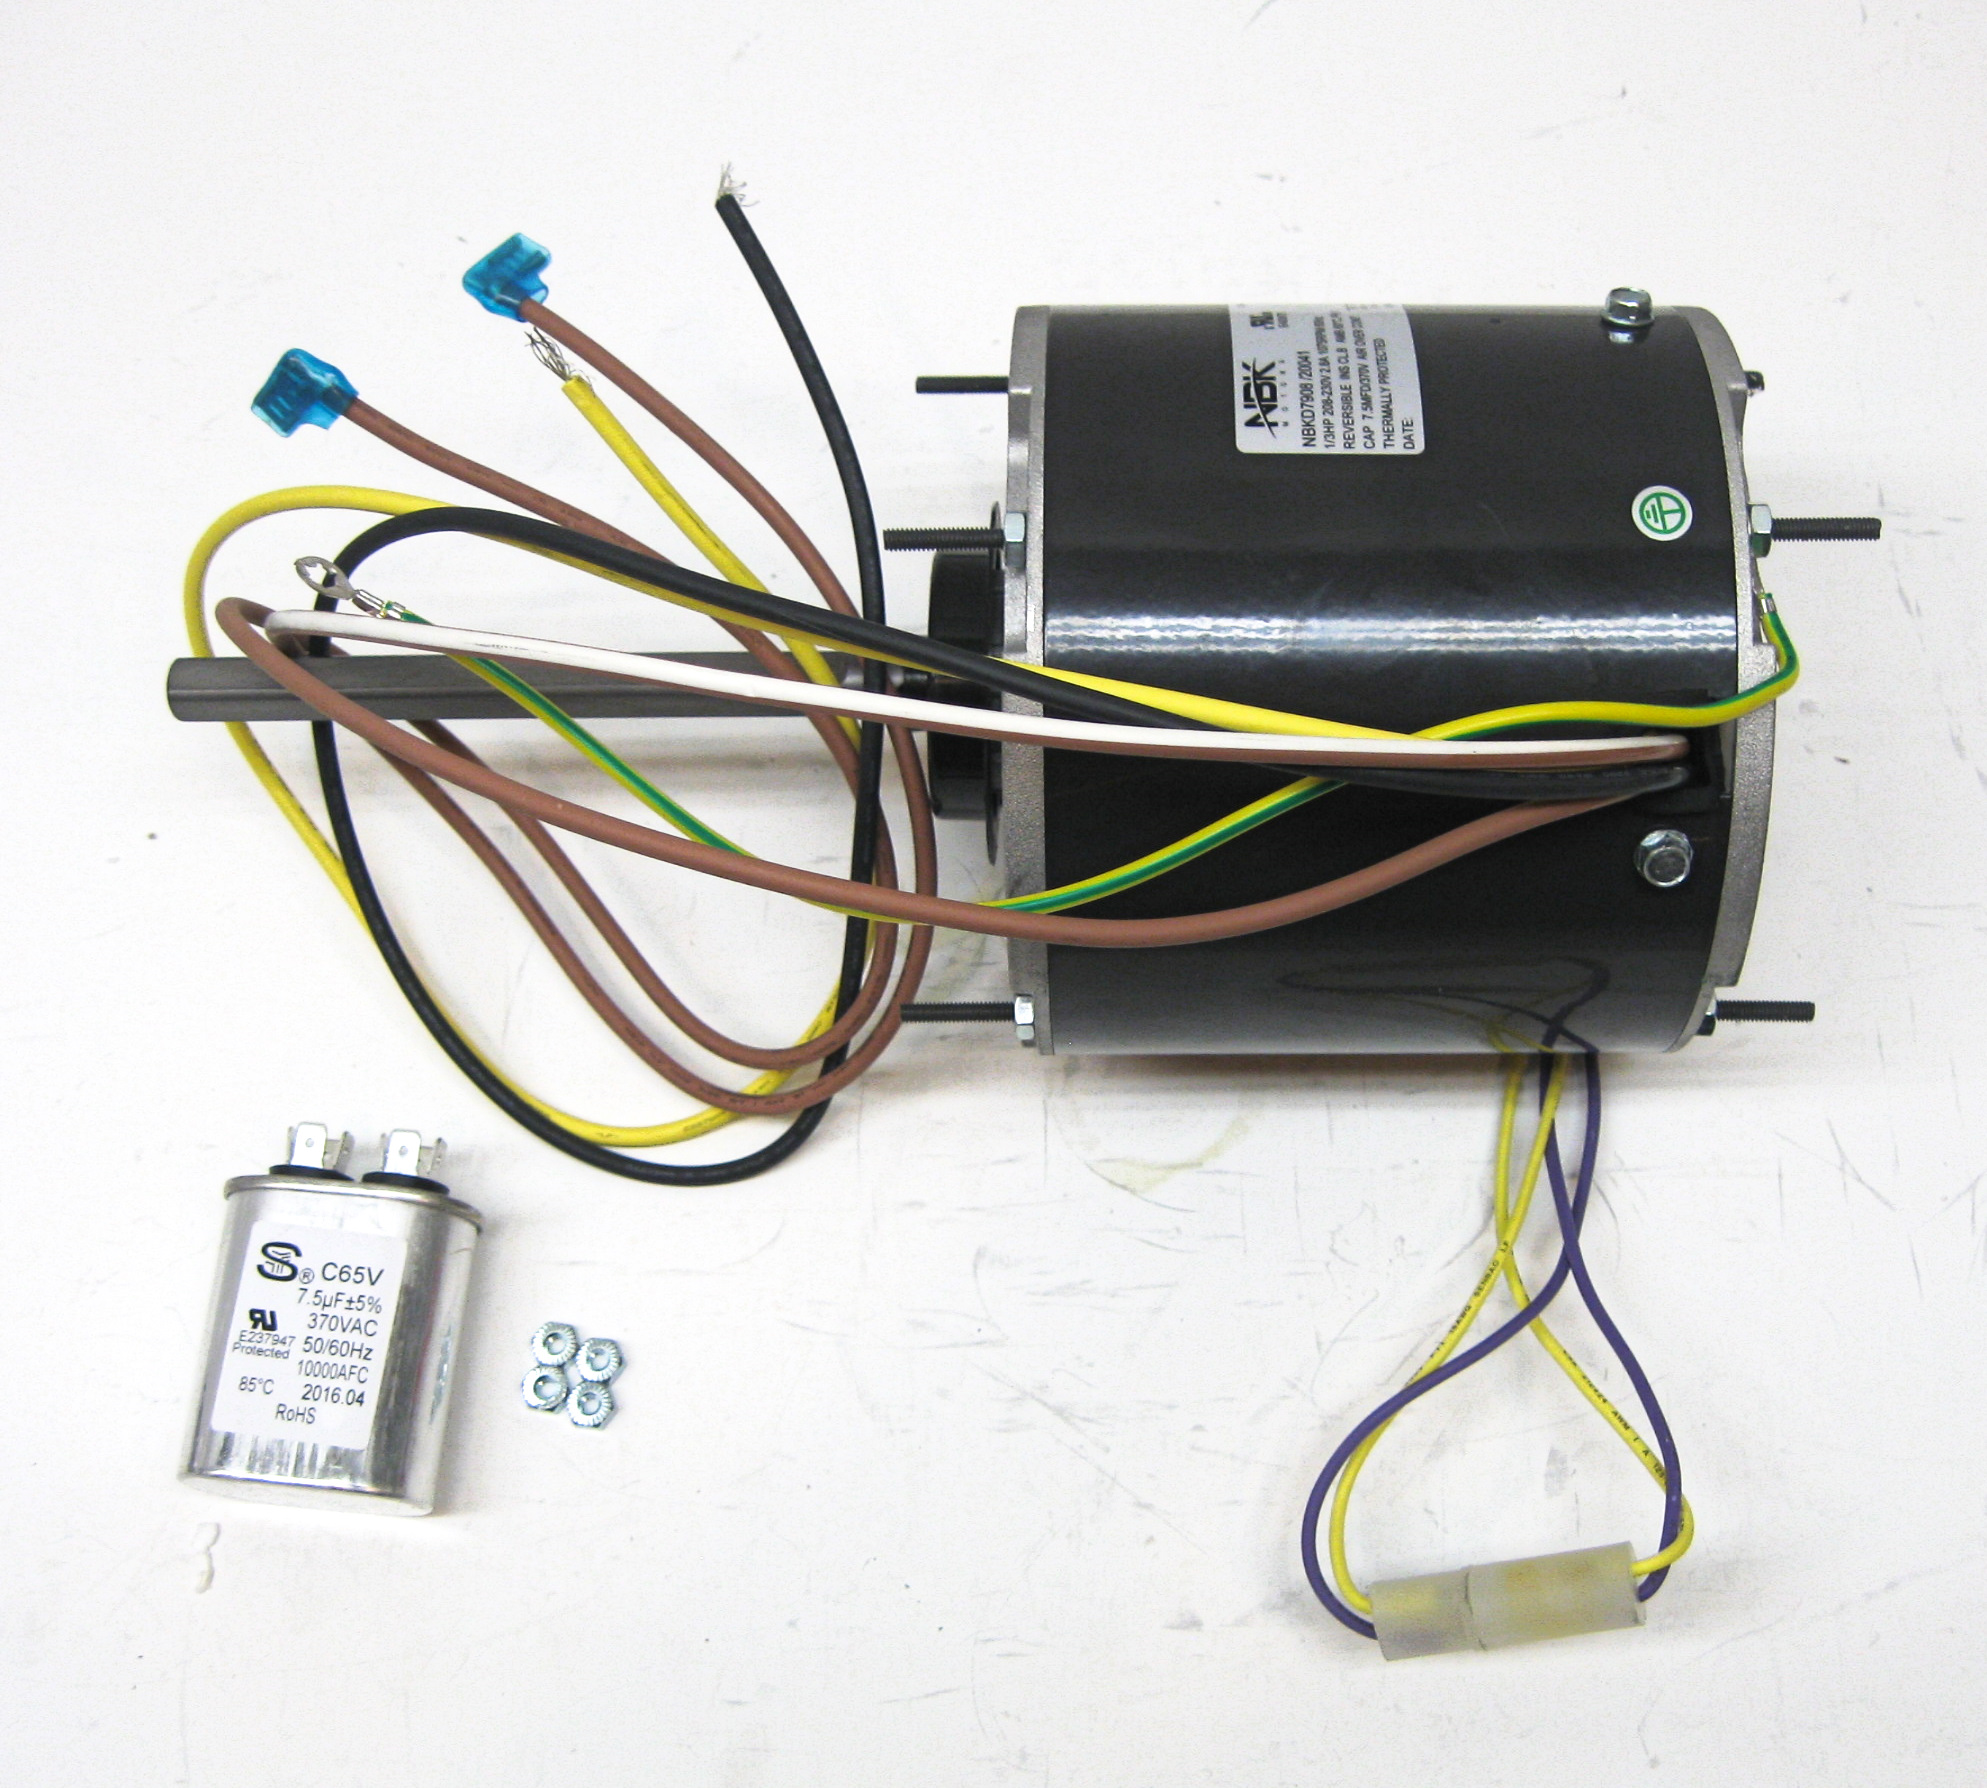 d7908 wiring diagram ac air conditioner condenser fan motor 1 3 hp 1075 rpm 230  ac air conditioner condenser fan motor 1 3 hp 1075 rpm 230